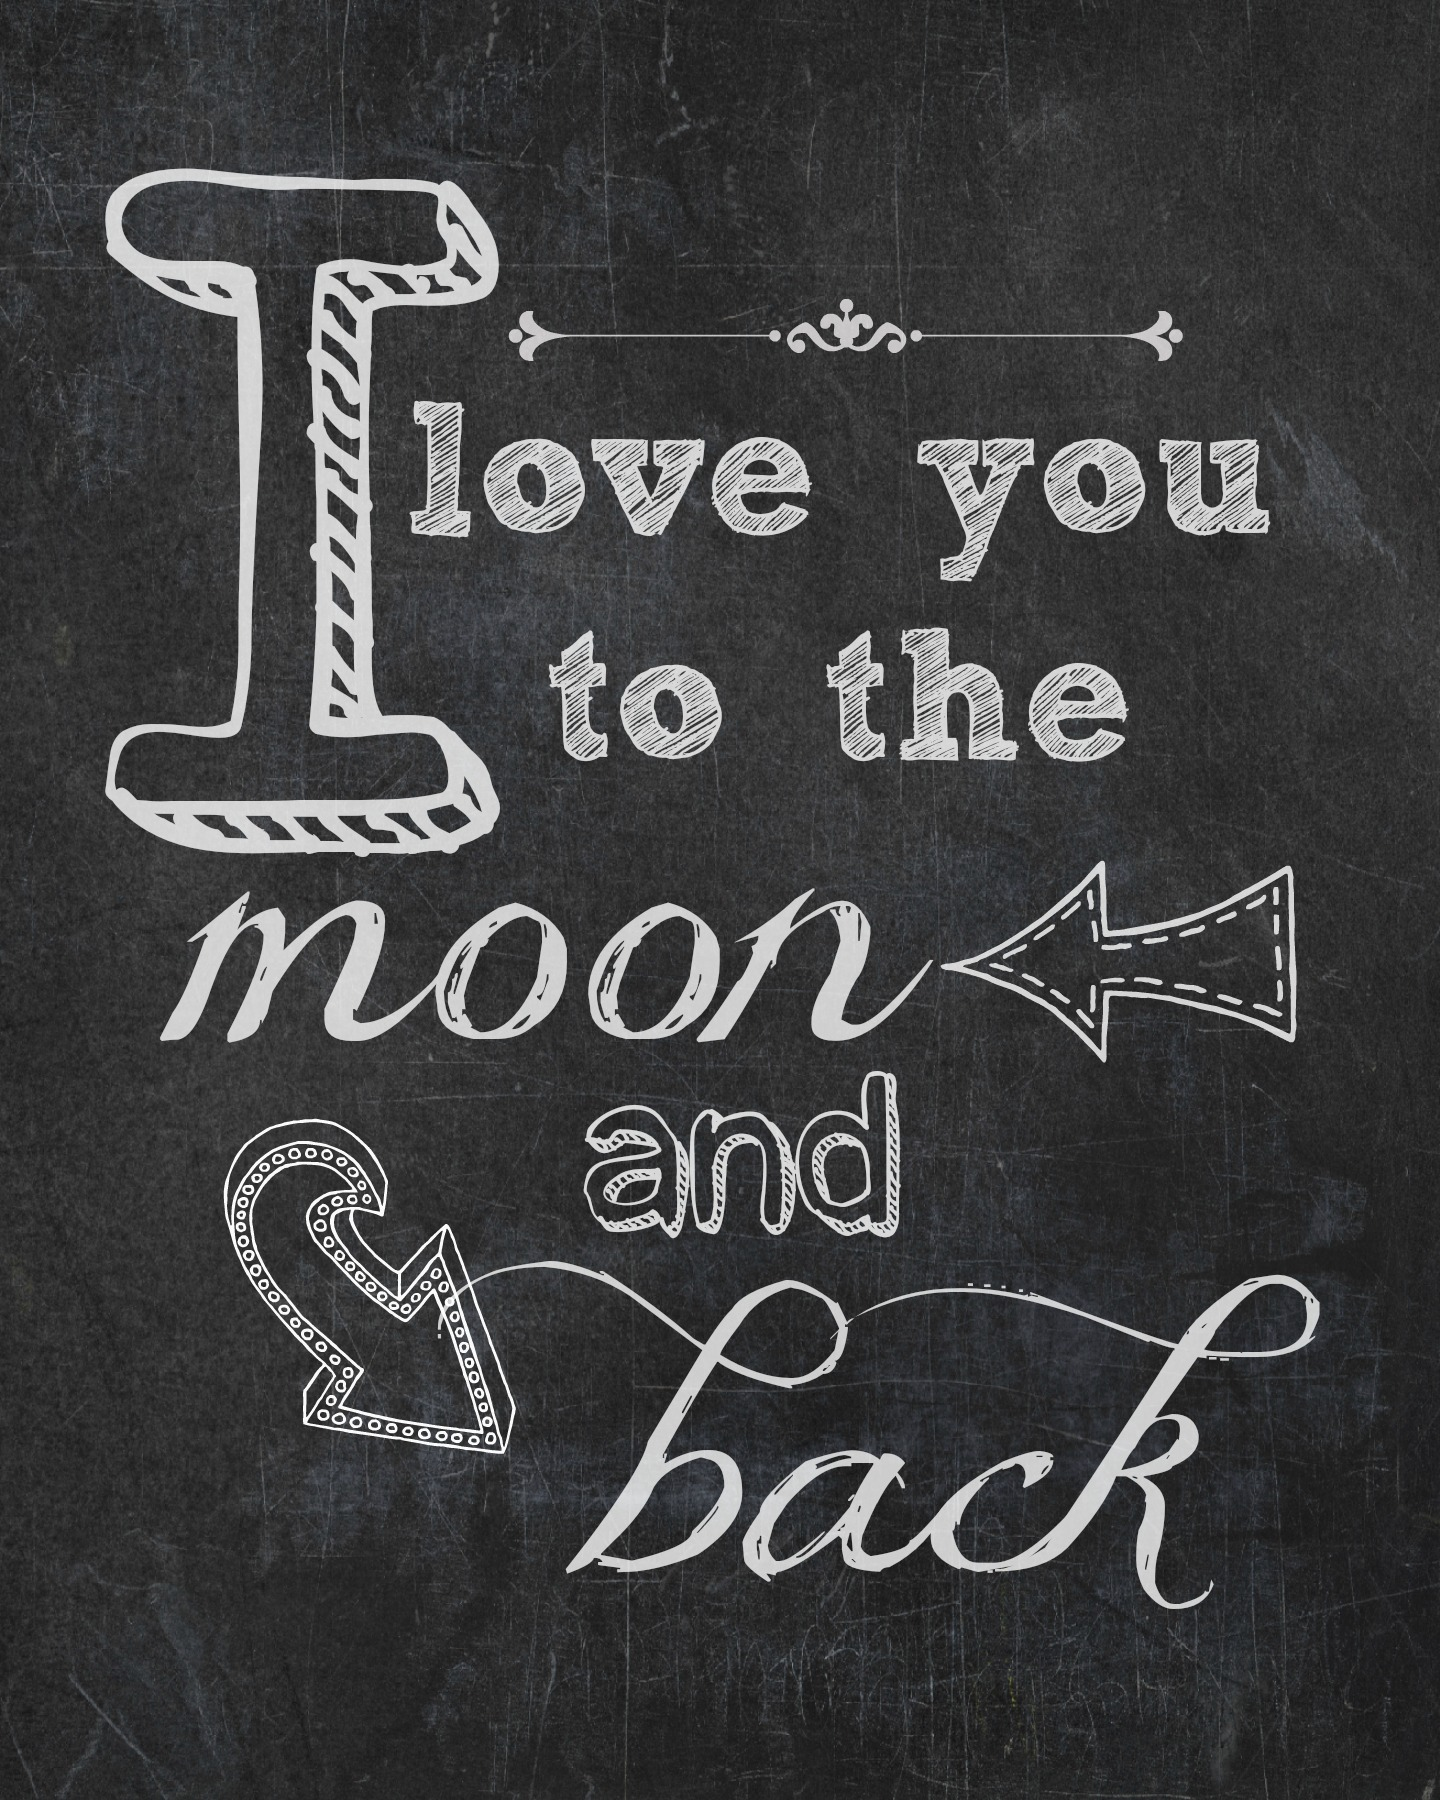 I Love You To The Moon Back Endlessly Inspired